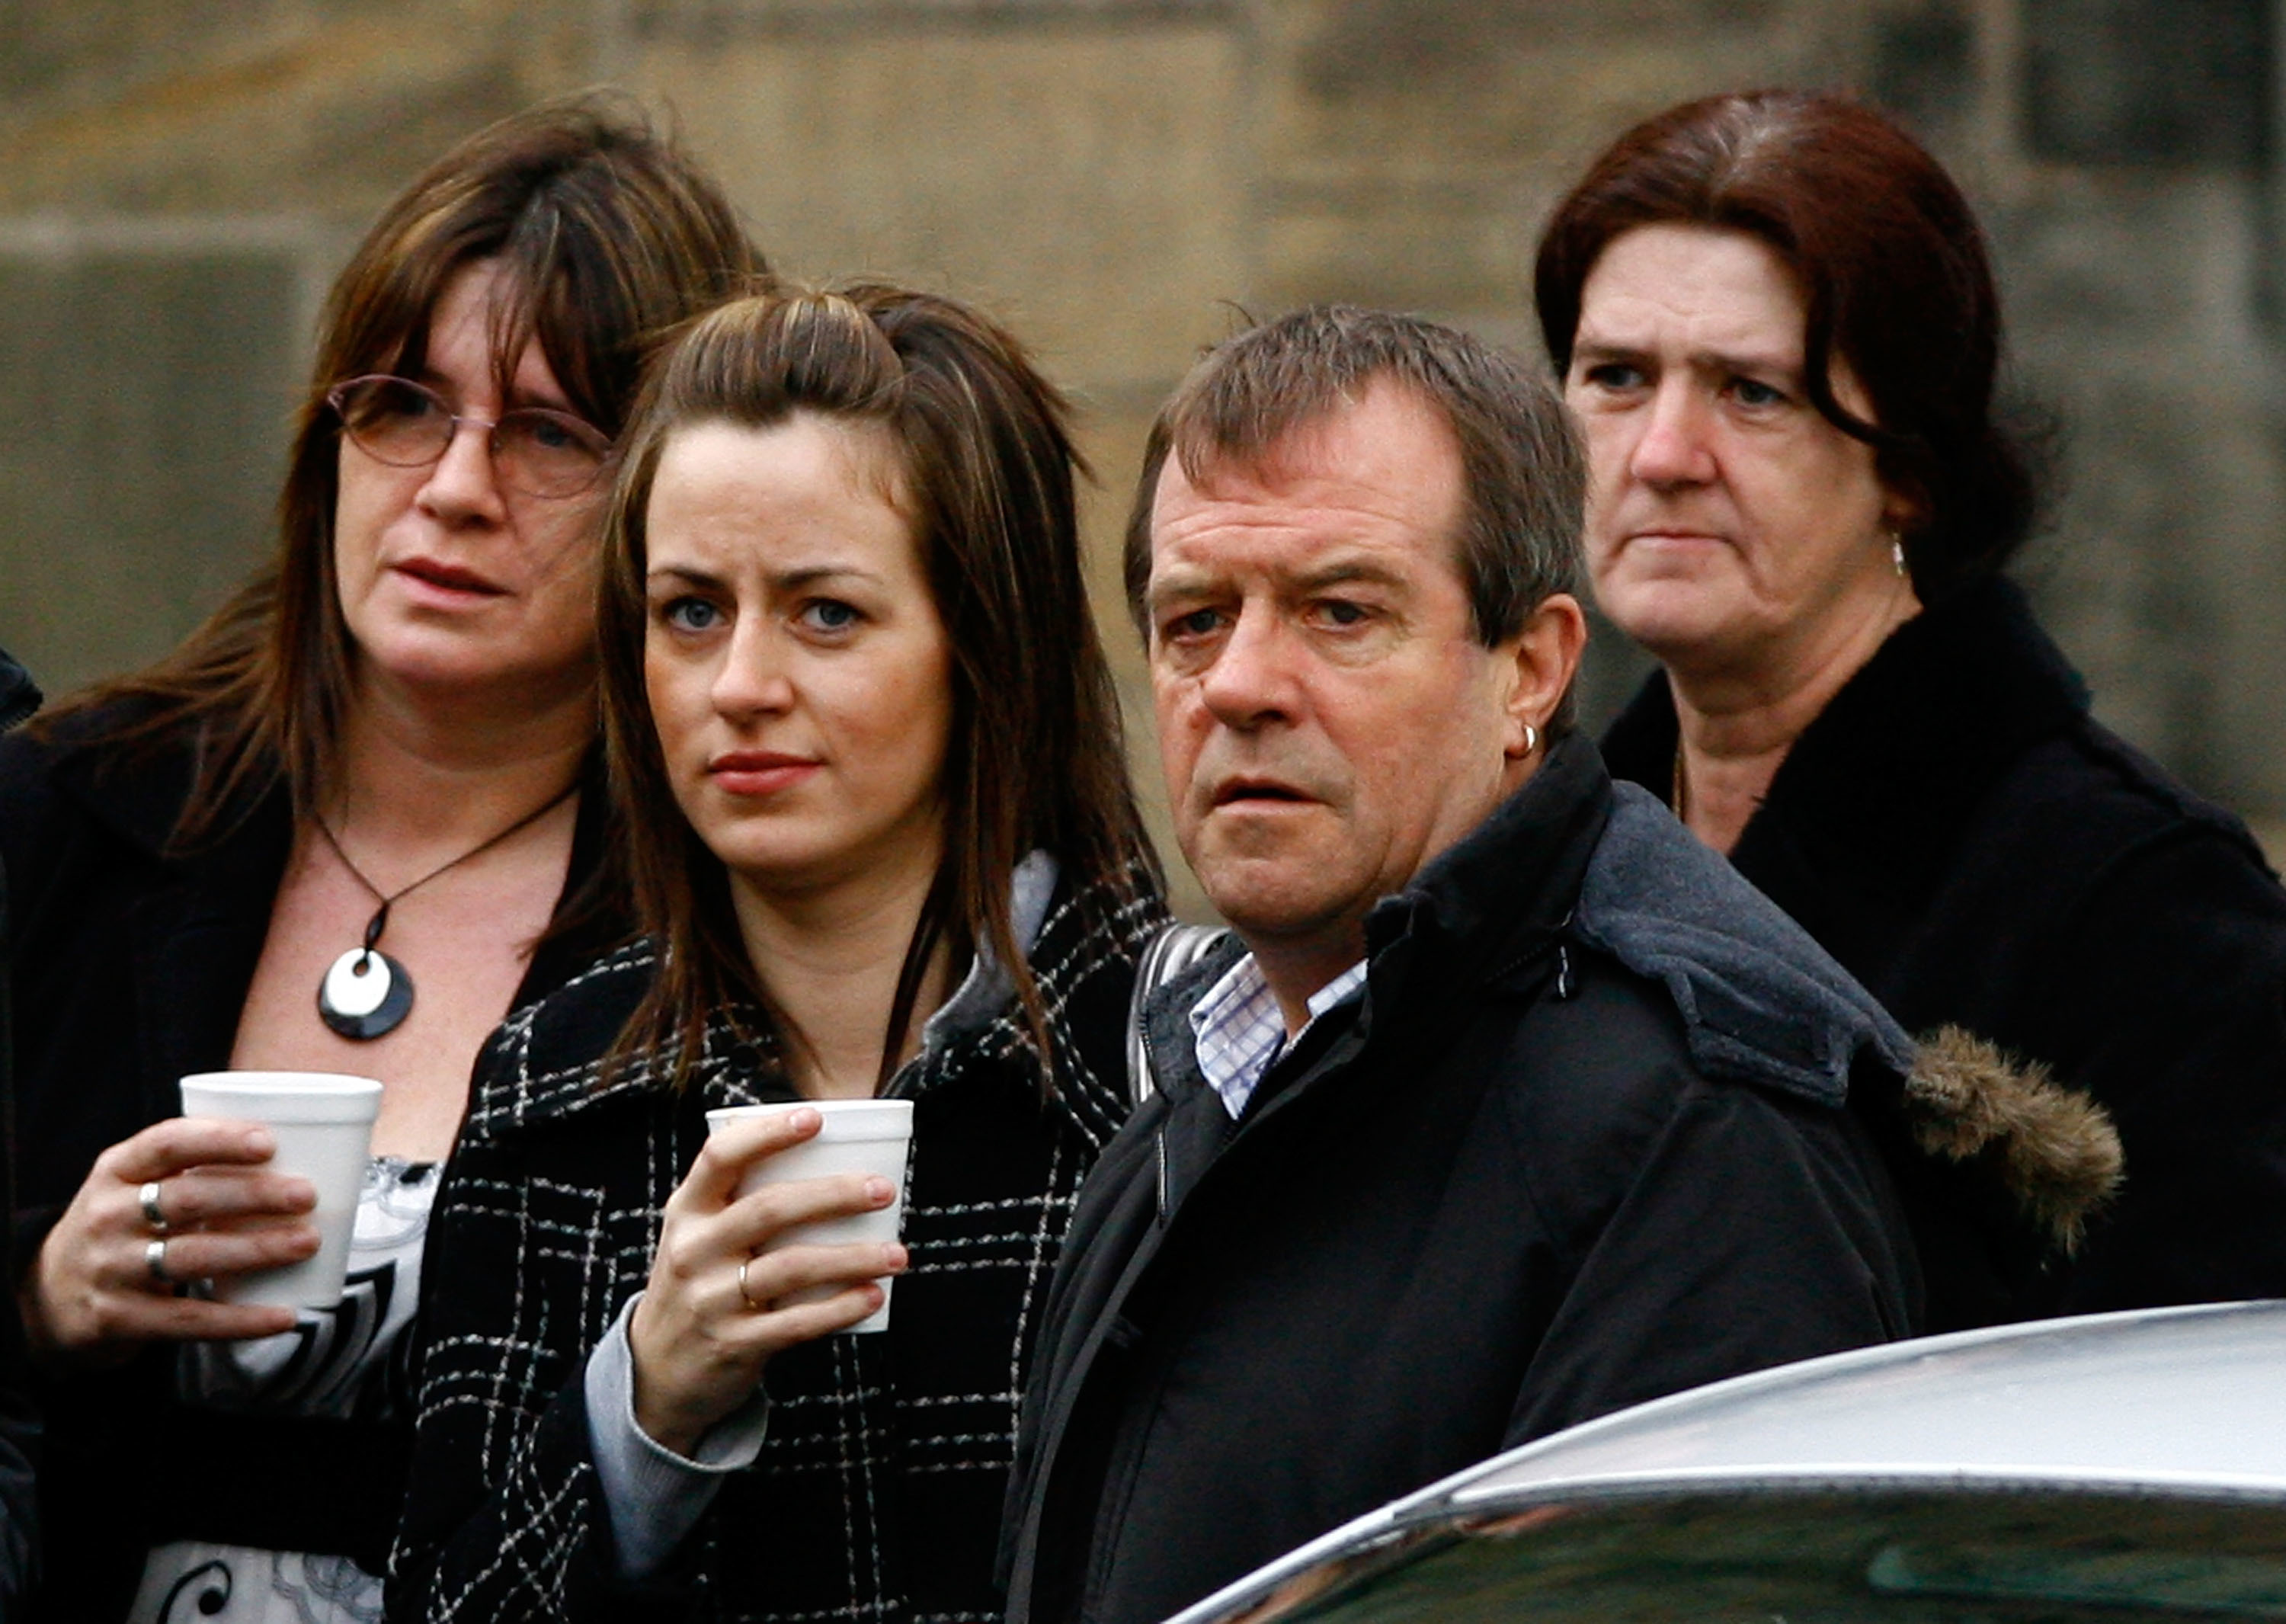 Michael Hamilton, father of Vicky, has hit out at what he sees as a sham by killer Peter Tobin. ( Jeff J Mitchell/Getty Images)